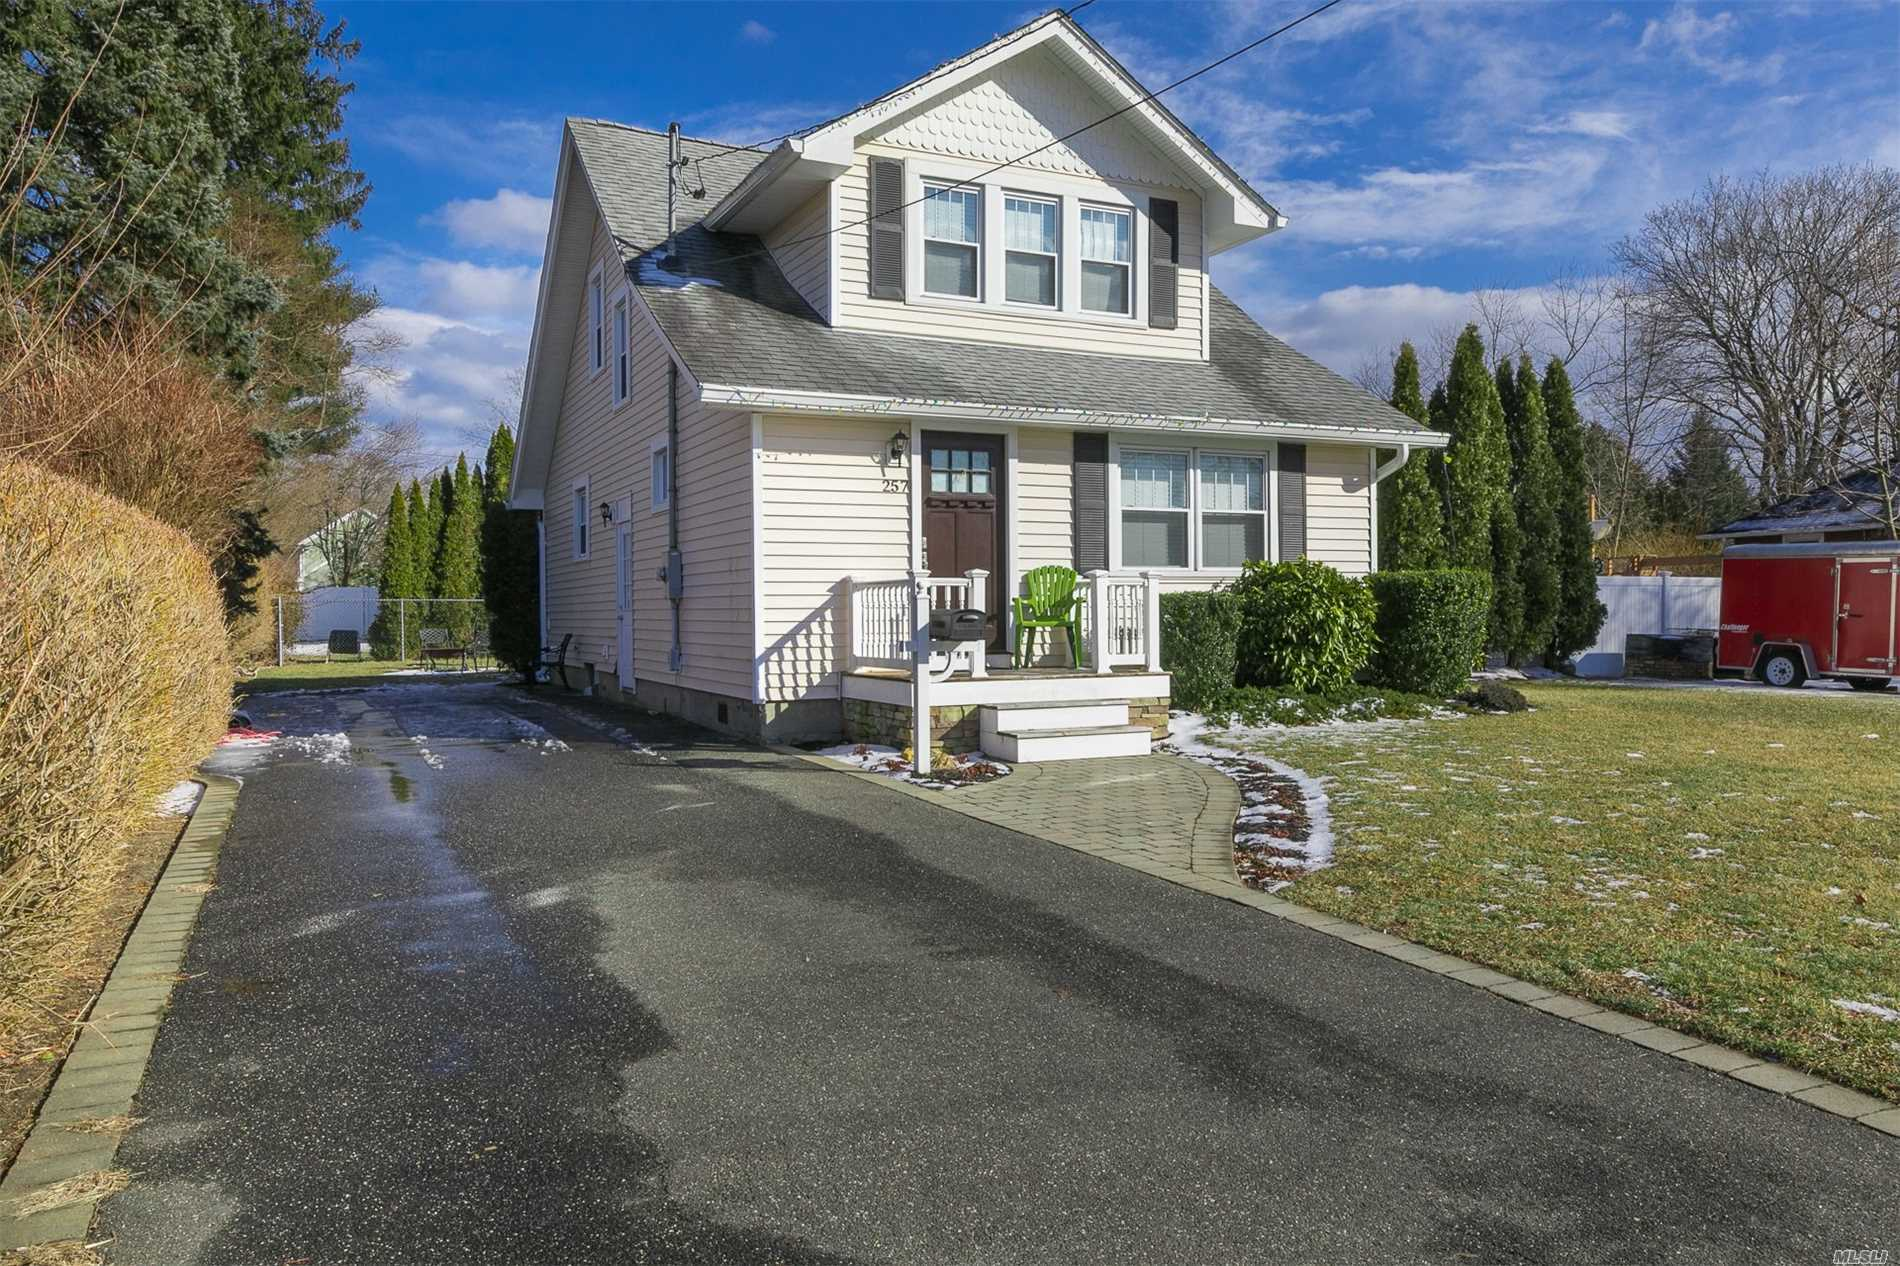 Charming Craftsman Style Home With Many Recent Updates. Open Floor Plan- Remodeled Kitchen Open To Dining Area, Old Growth Oak Flooring In Living Room. First Floor Laundry. Basement Is Framed With Rough Plumbing. Near To Shopping, And Lirr.